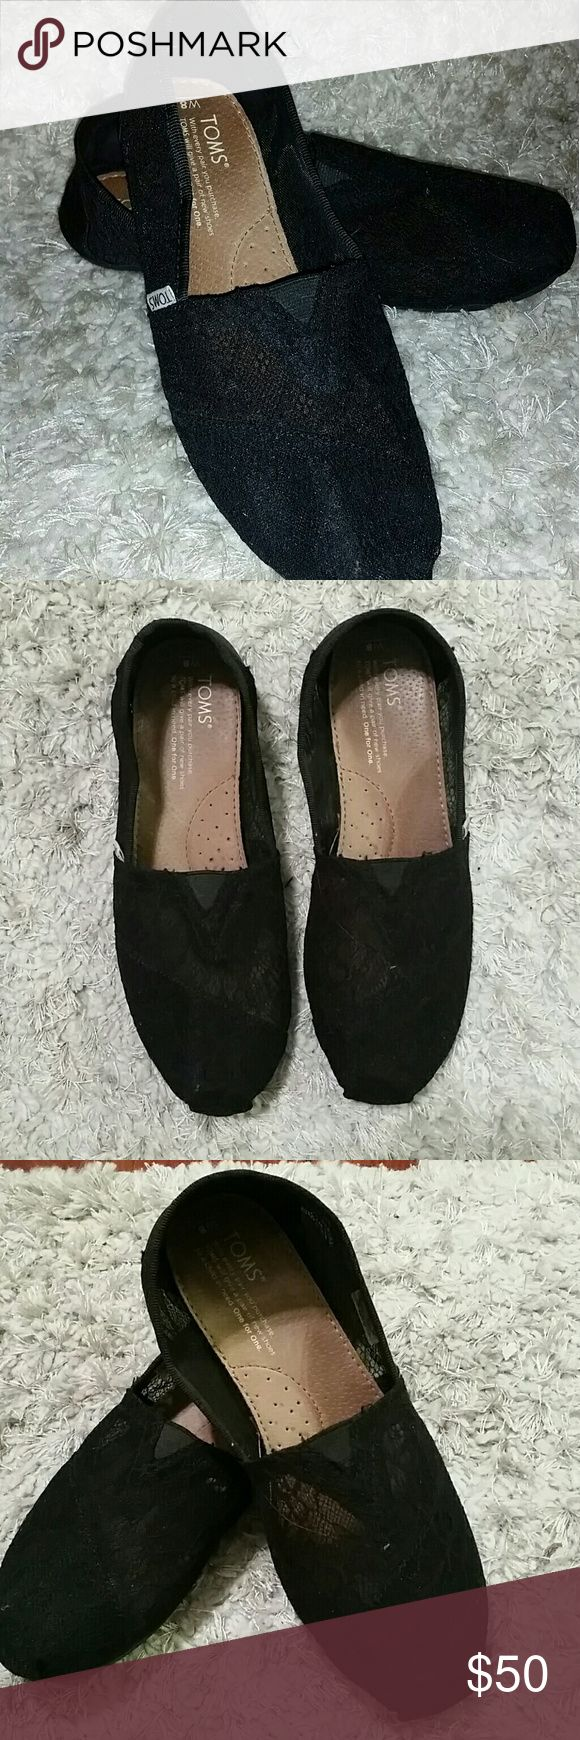 Black lace TOMS flats These lovely black lace TOMS will make you click your heels with joy - they're comfort and style all wrapped up in one. Worn once, in excellent condition. Toms Shoes Flats & Loafers